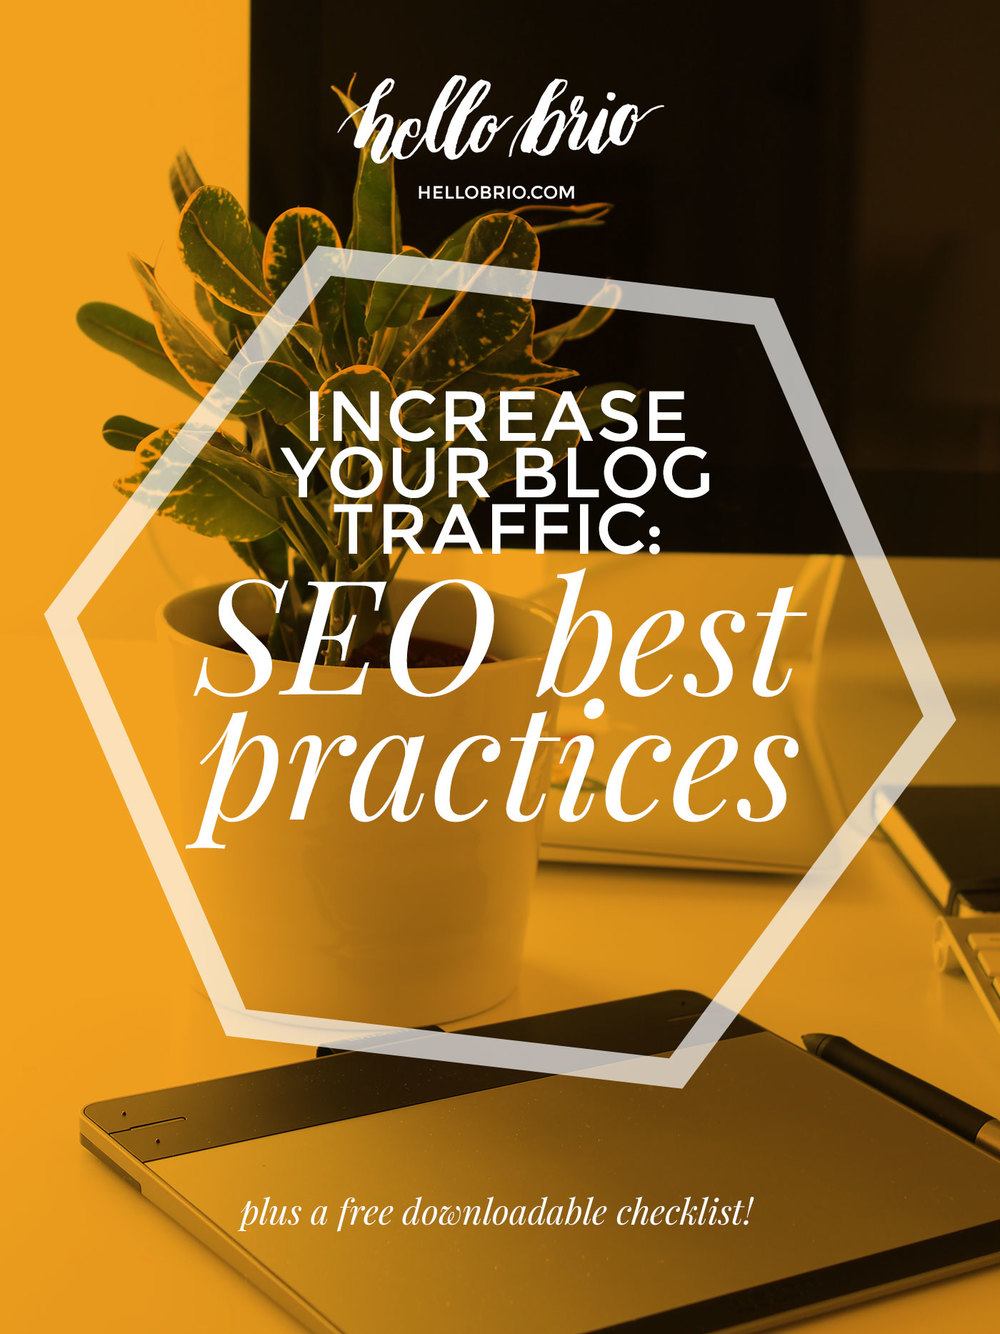 Increase your blog traffic with these 9 blog SEO best practices. Get a free downloadable checklist!